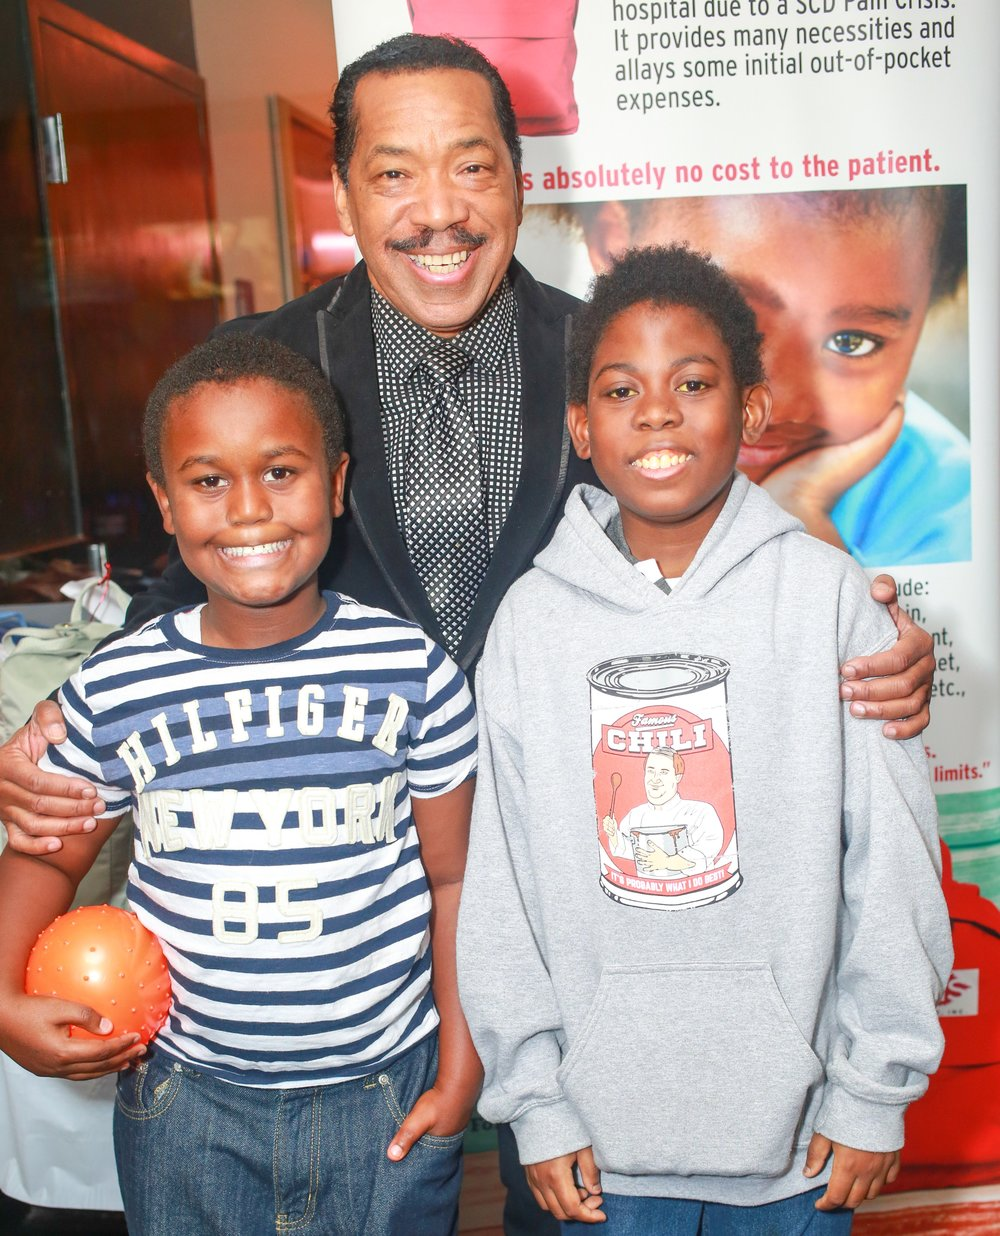 In continued support of our SCD community, Founding KISF Board Member, the talented Obba Babatundé joined the festivities for a fun-filled day with patients and families. -